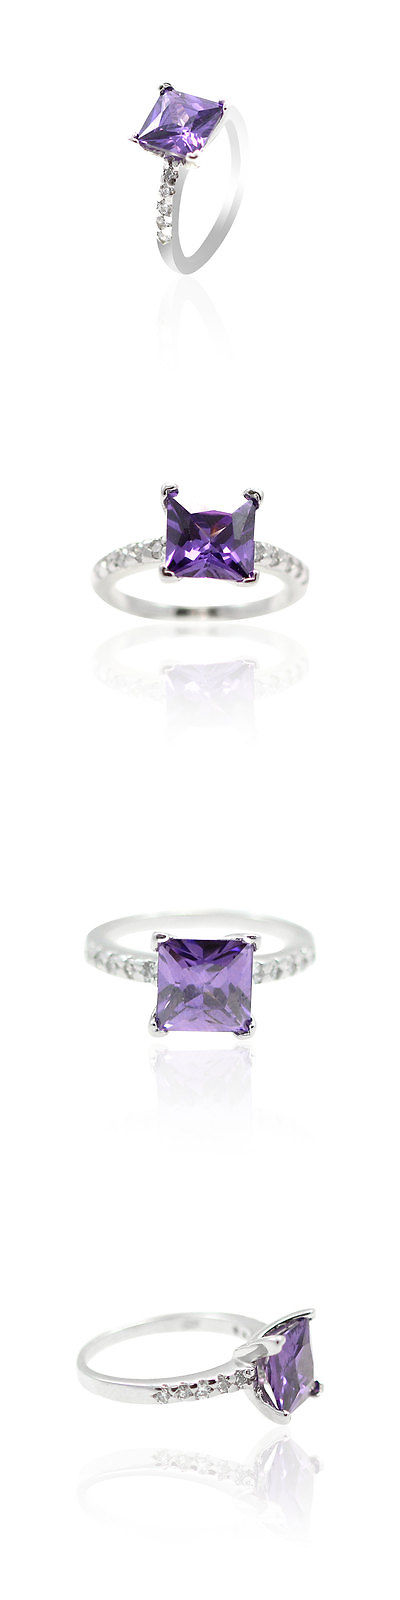 Rings 67681: Solitaire Wedding Engagement Ring Sterling Silver 2Ct Purple Amethyst Russian Cz BUY IT NOW ONLY: $30.65